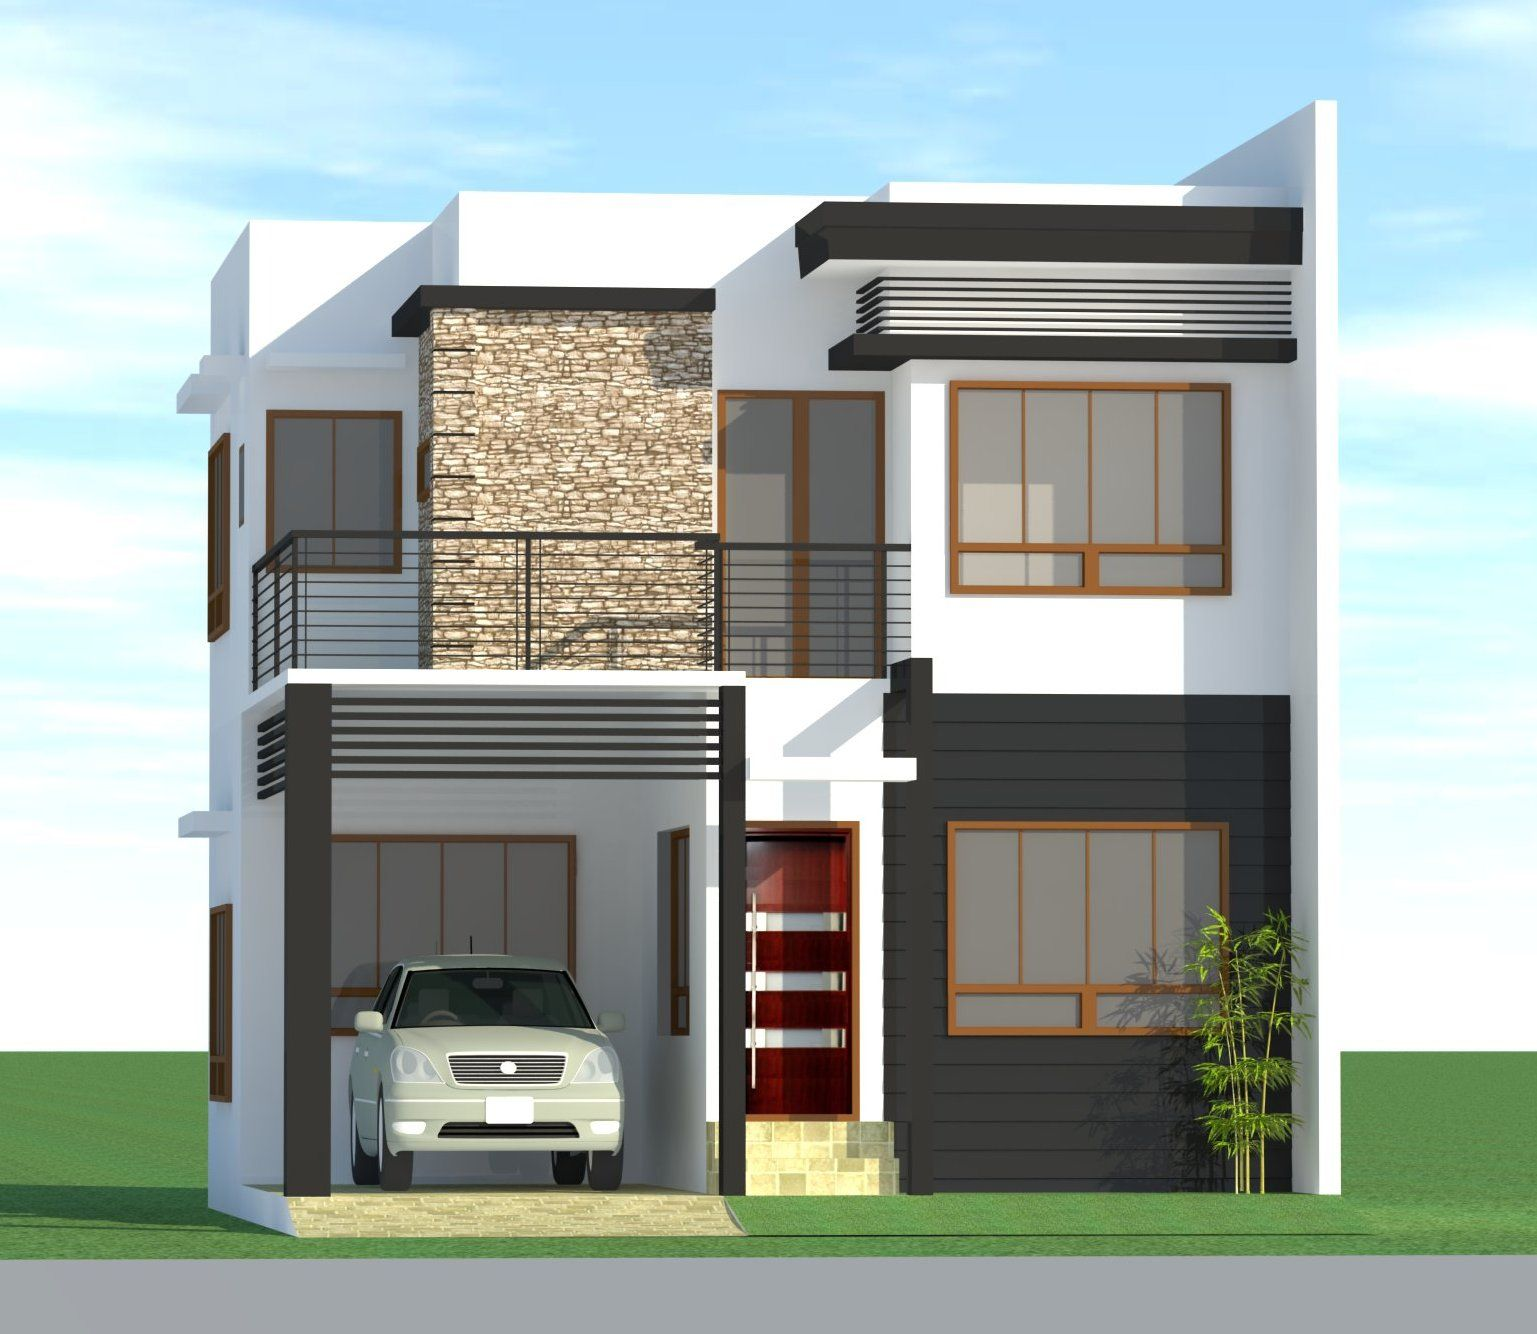 Philippines house design images 3 home design ideas for House plan philippines